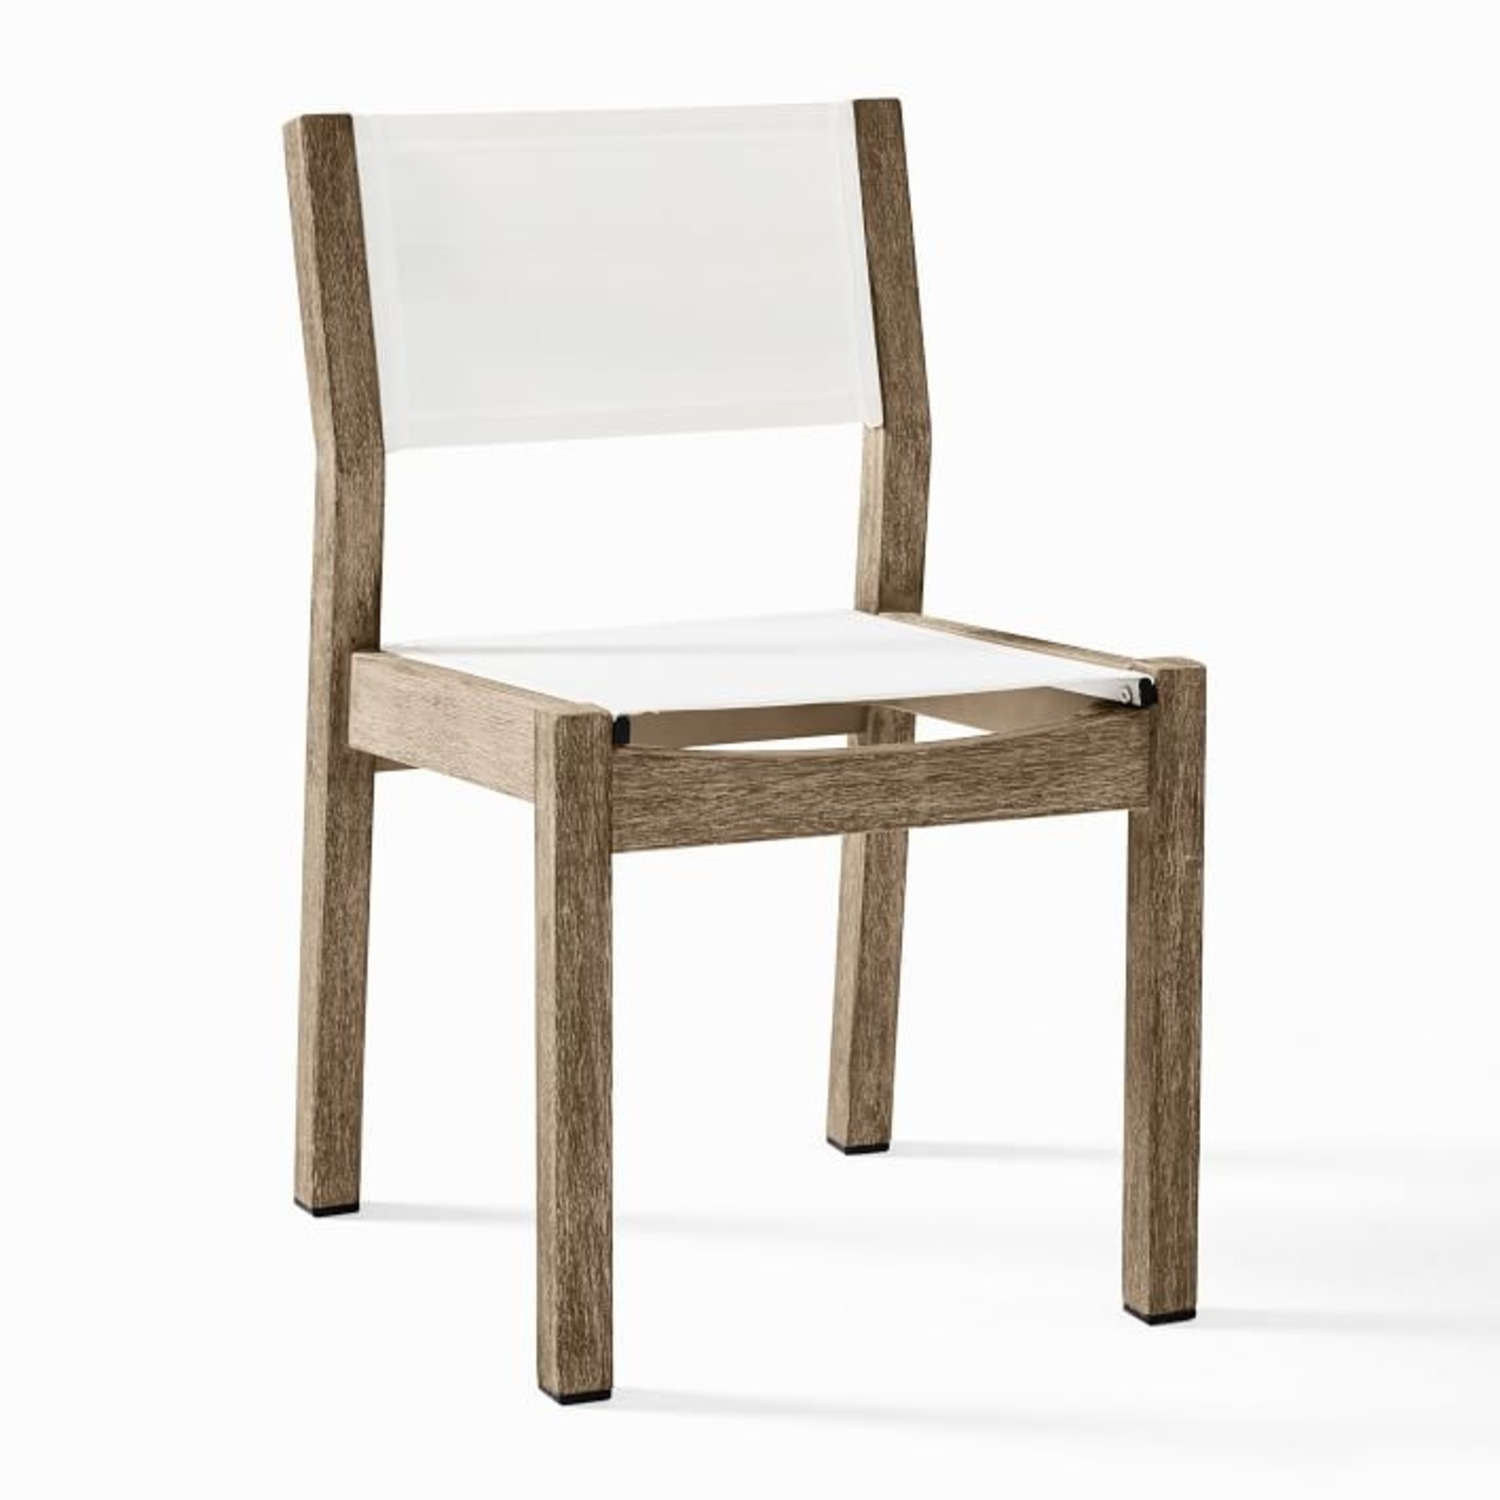 West Elm Portside Outdoor Textilene Dining Chair - image-1